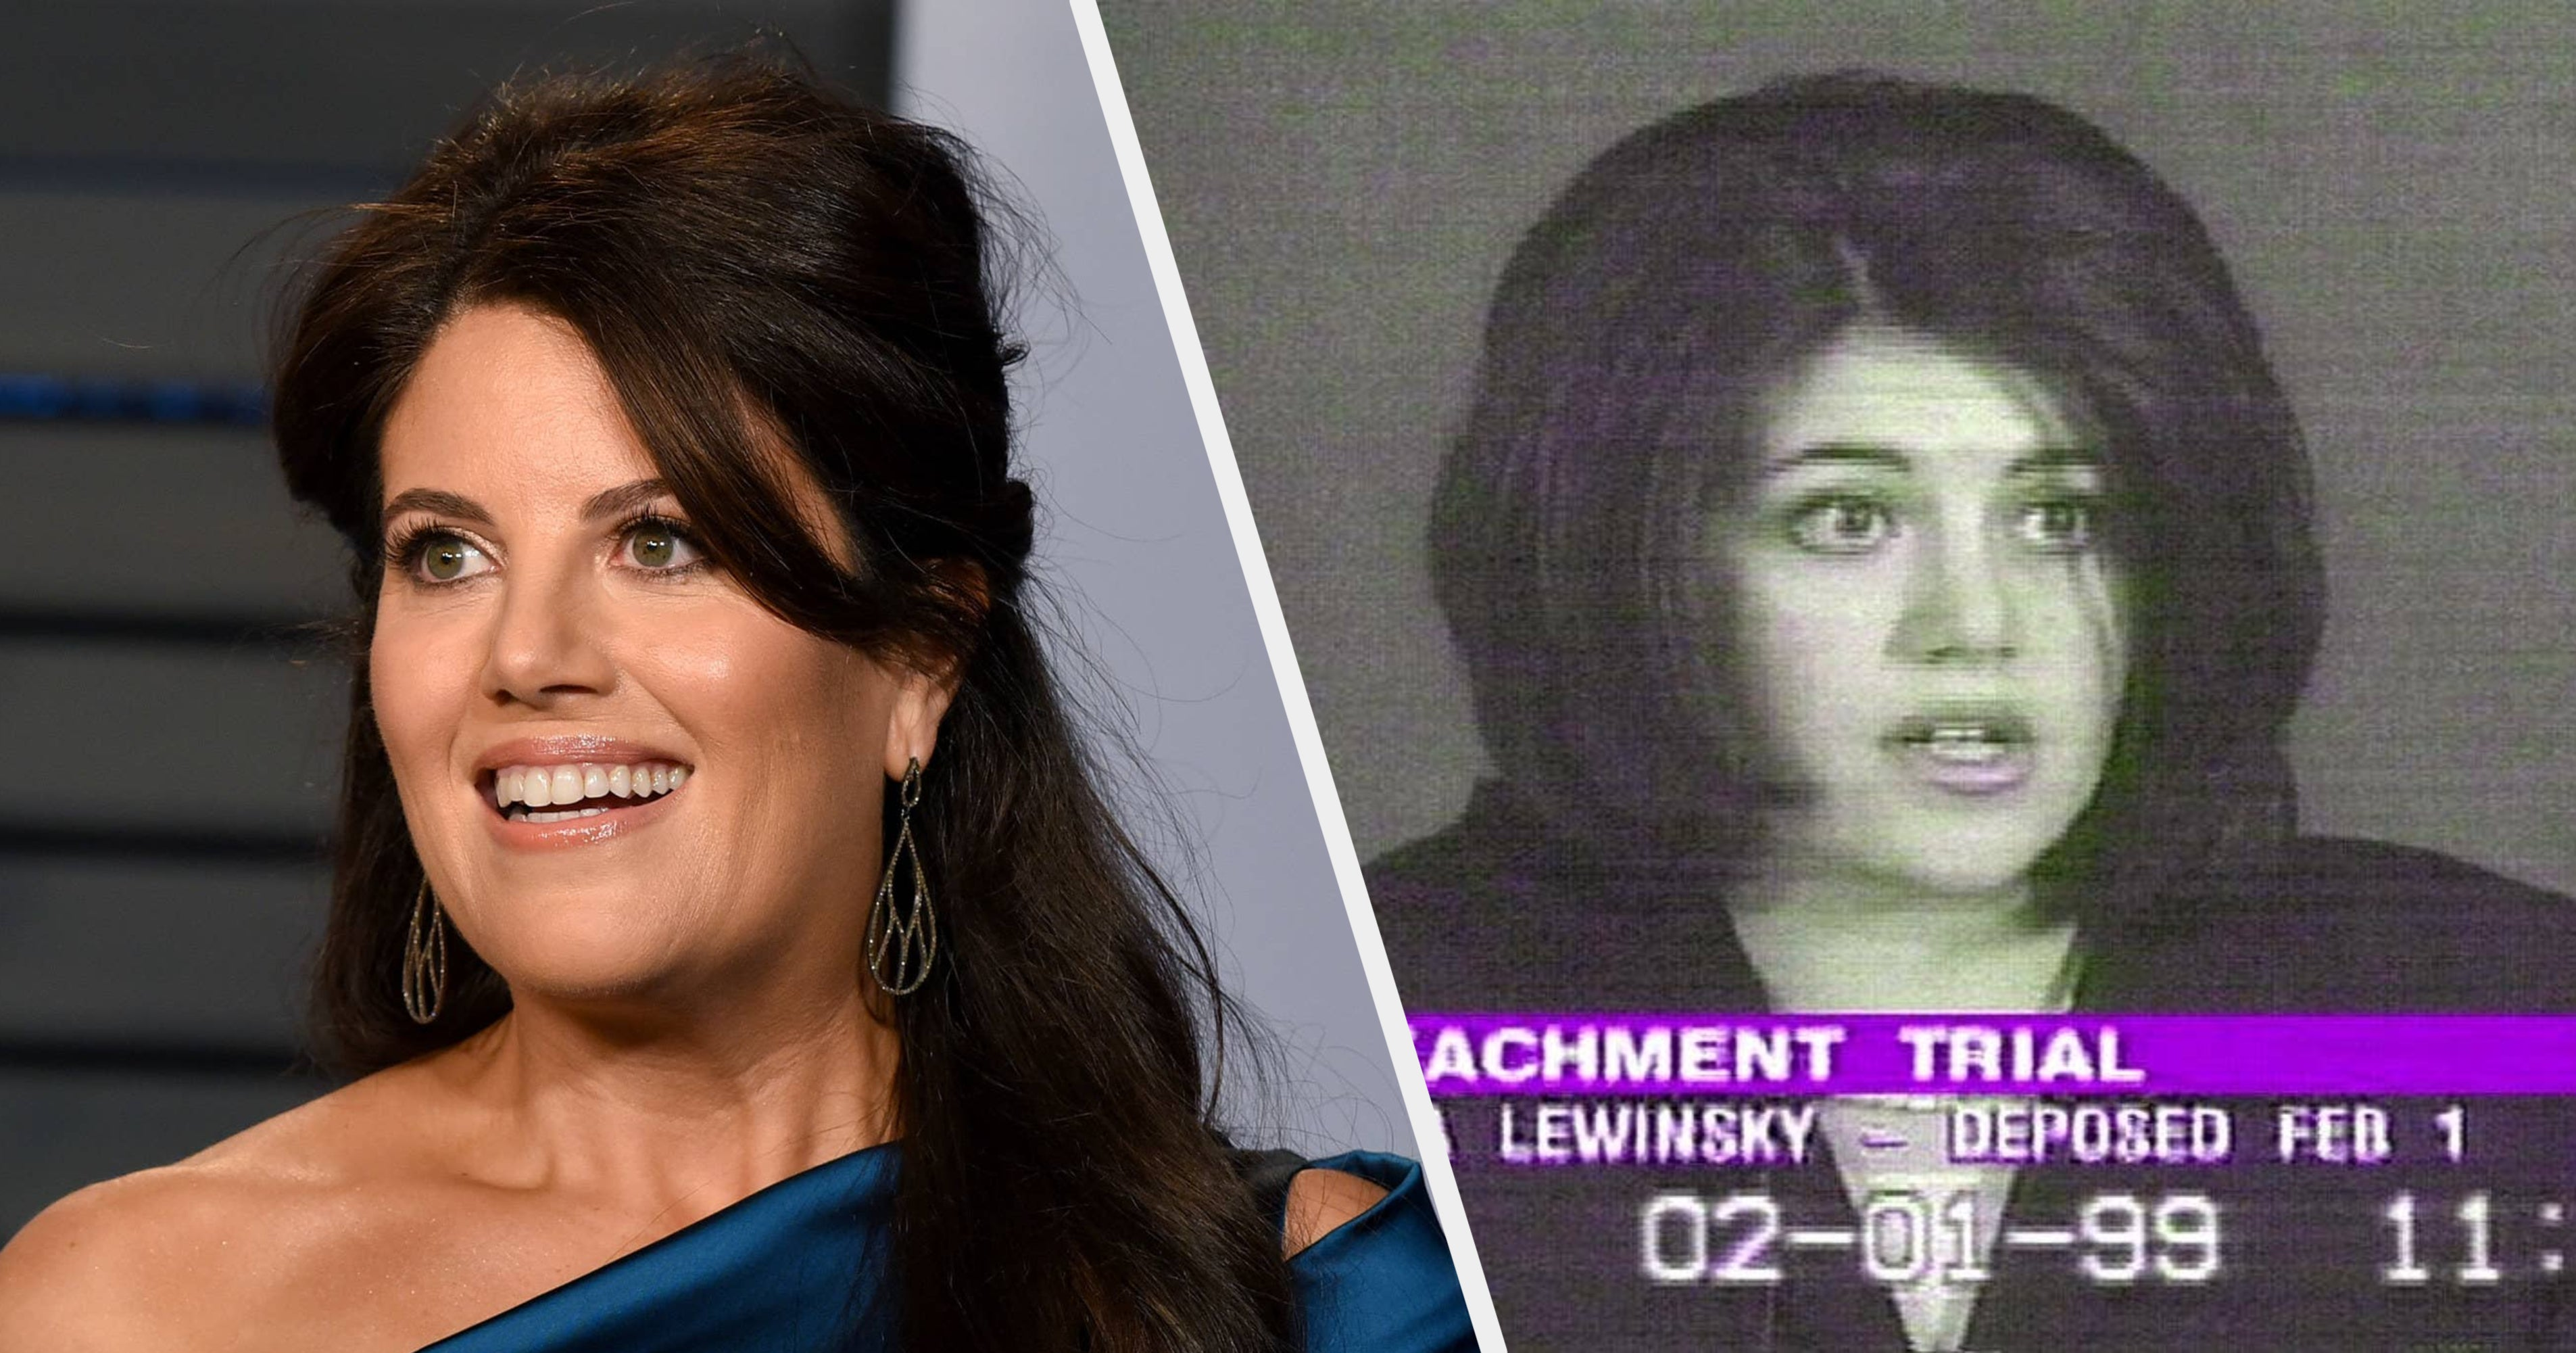 """Monica Lewinsky Hired A Therapist To Watch """"Impeachment"""" With Her In Order To Process The """"Retraumatizing"""" Scenes Retelling Her Affair With Bill Clinton"""